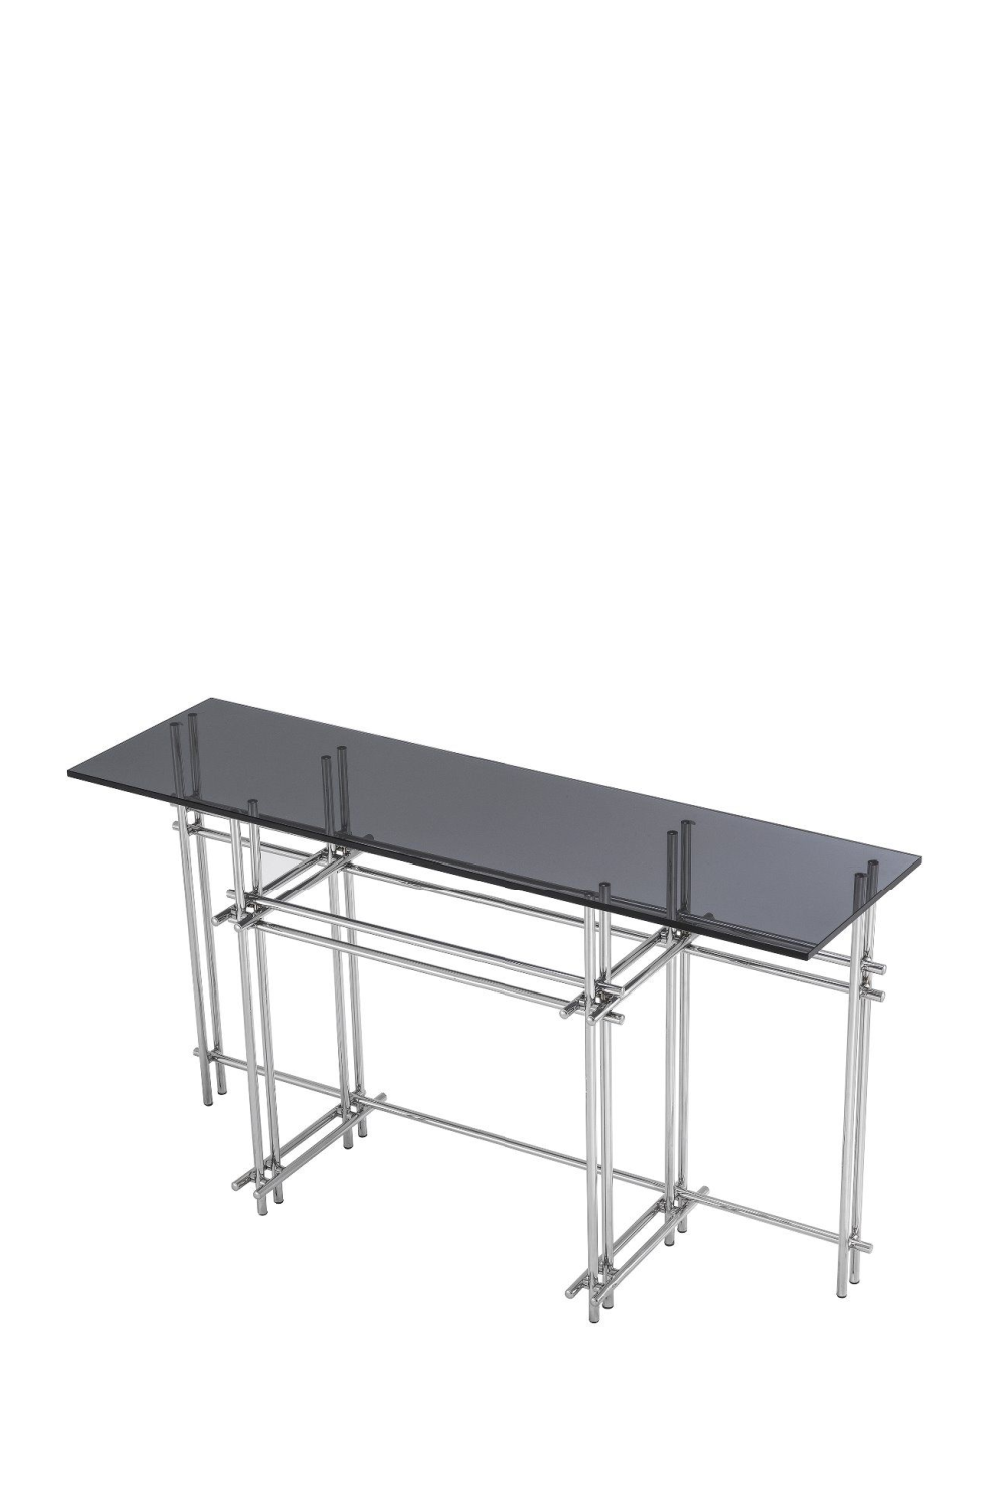 Smoked Glass Steel Console Table | Eichholtz Quinn | #1 Eichholtz